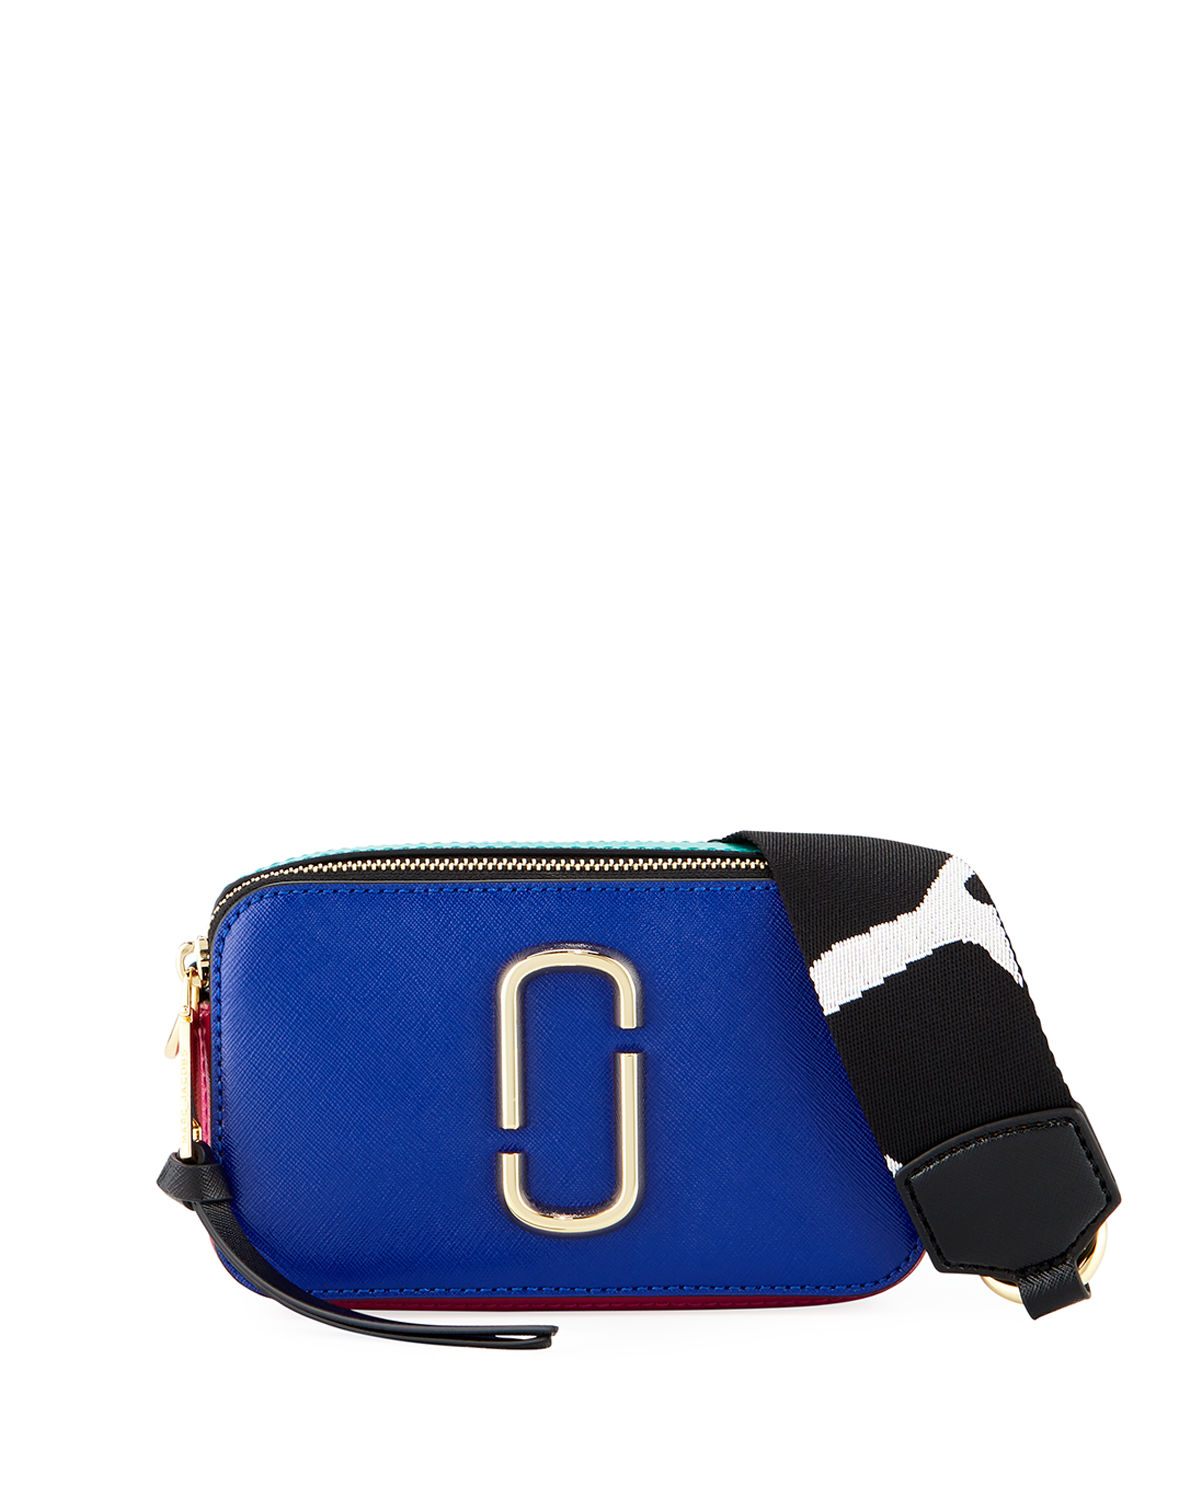 Snapshot Colorblock Camera Bag